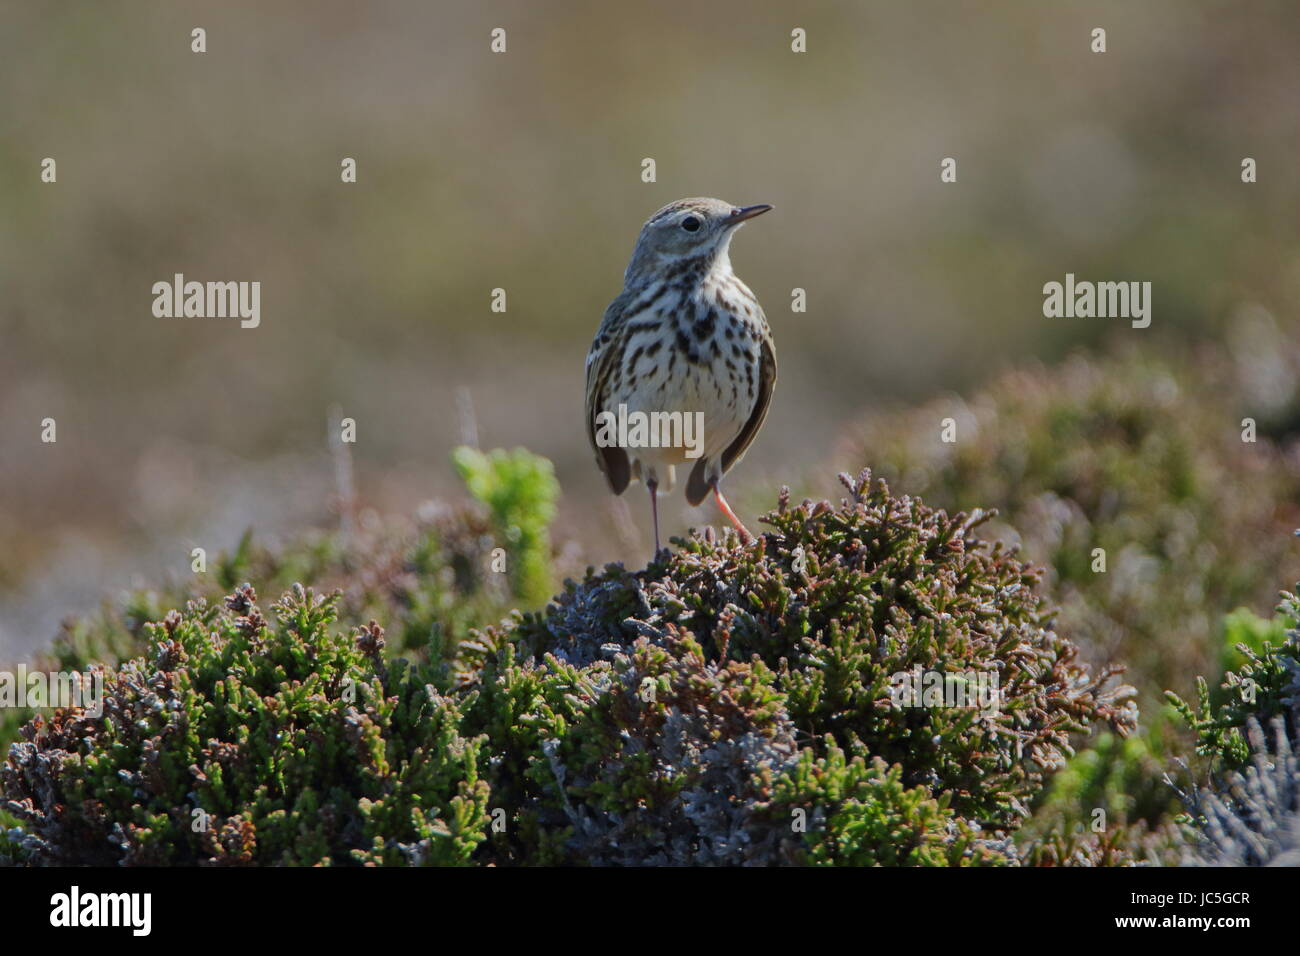 Meadow pipit, Anthus pratensis, photographed next to Tarbatness lighthouse in the highlands of Scotland Stock Photo